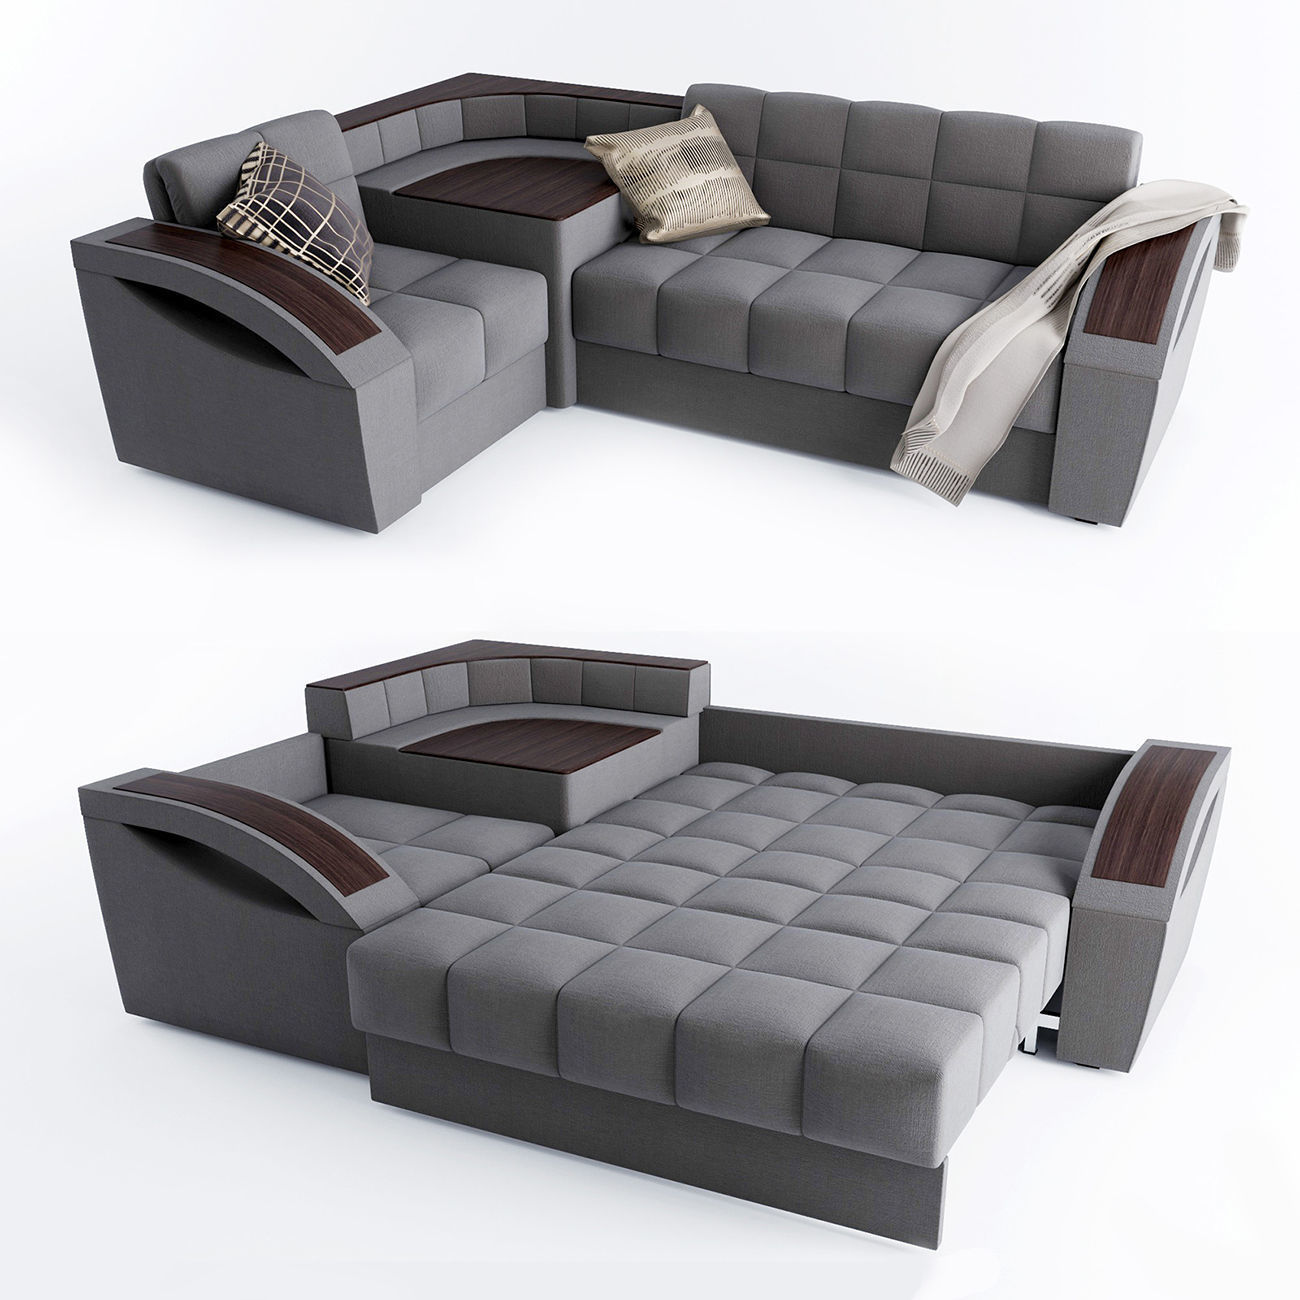 Corner Sofa Bed Montreal With A Left Angle Hoff Model Max Obj Mtl 1